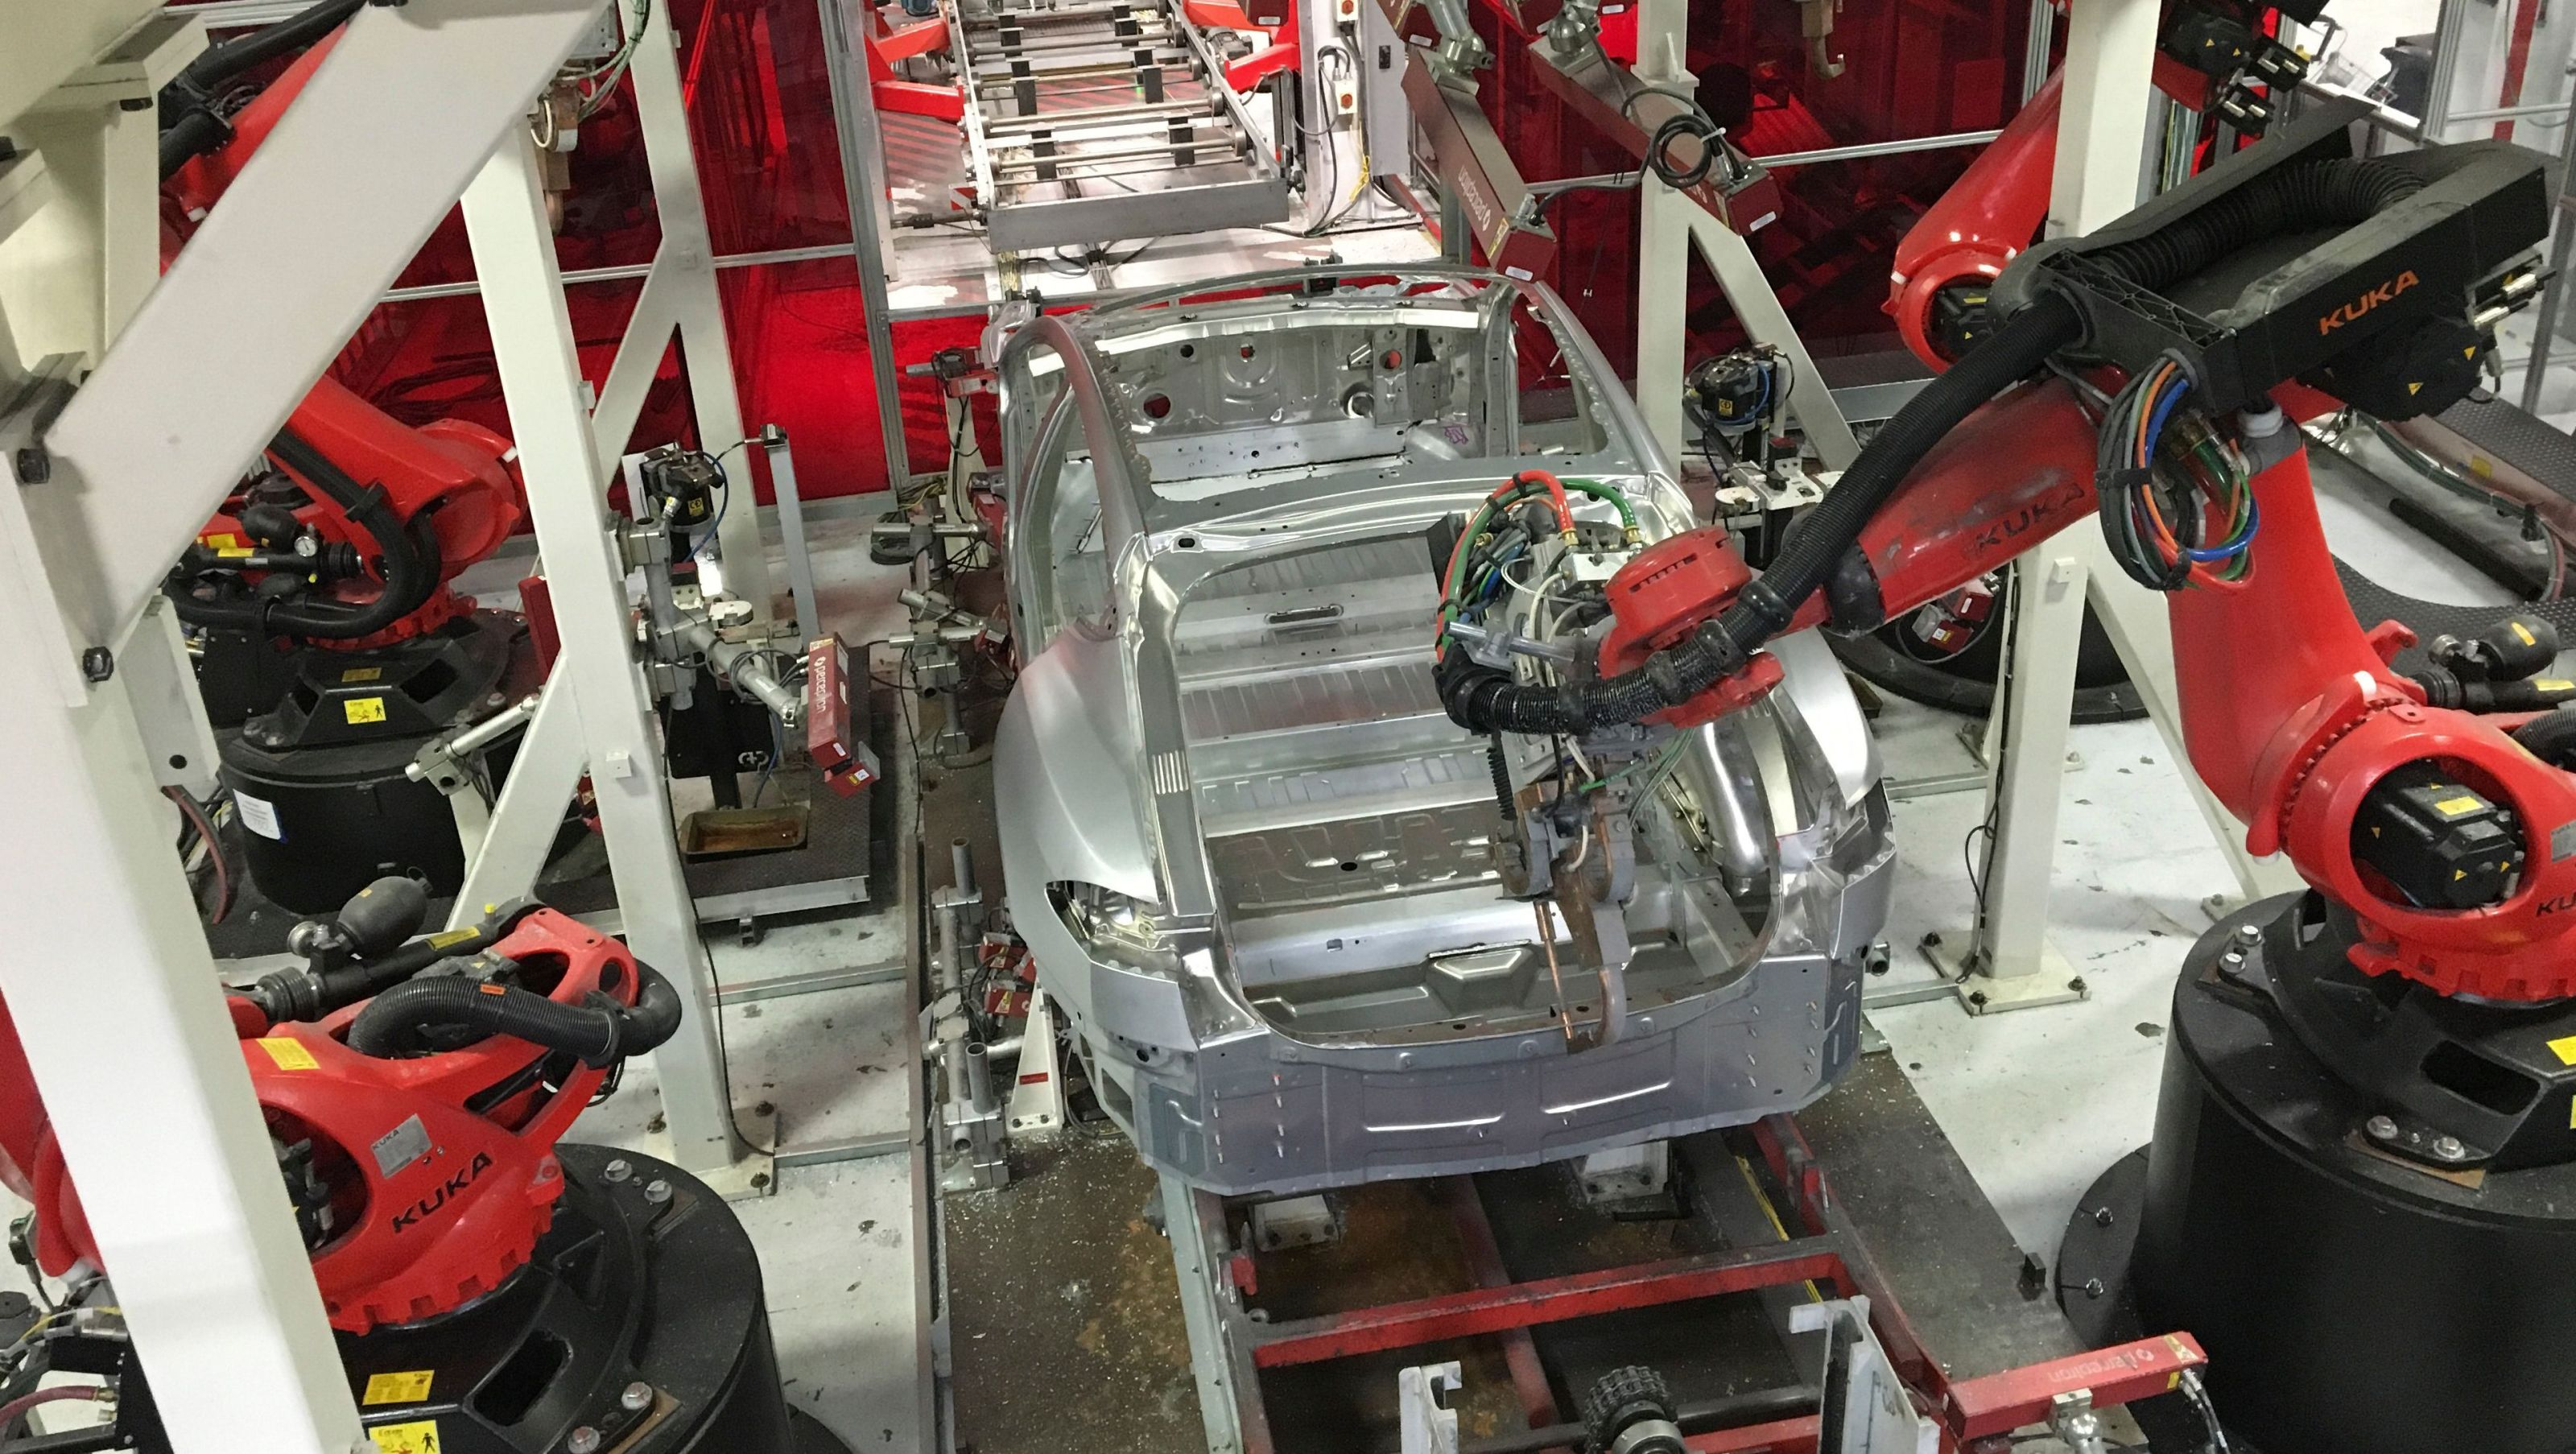 Auto Möbel Kaufen The Tesla Model 3 Cost 28 000 To Build German Engineers Say And